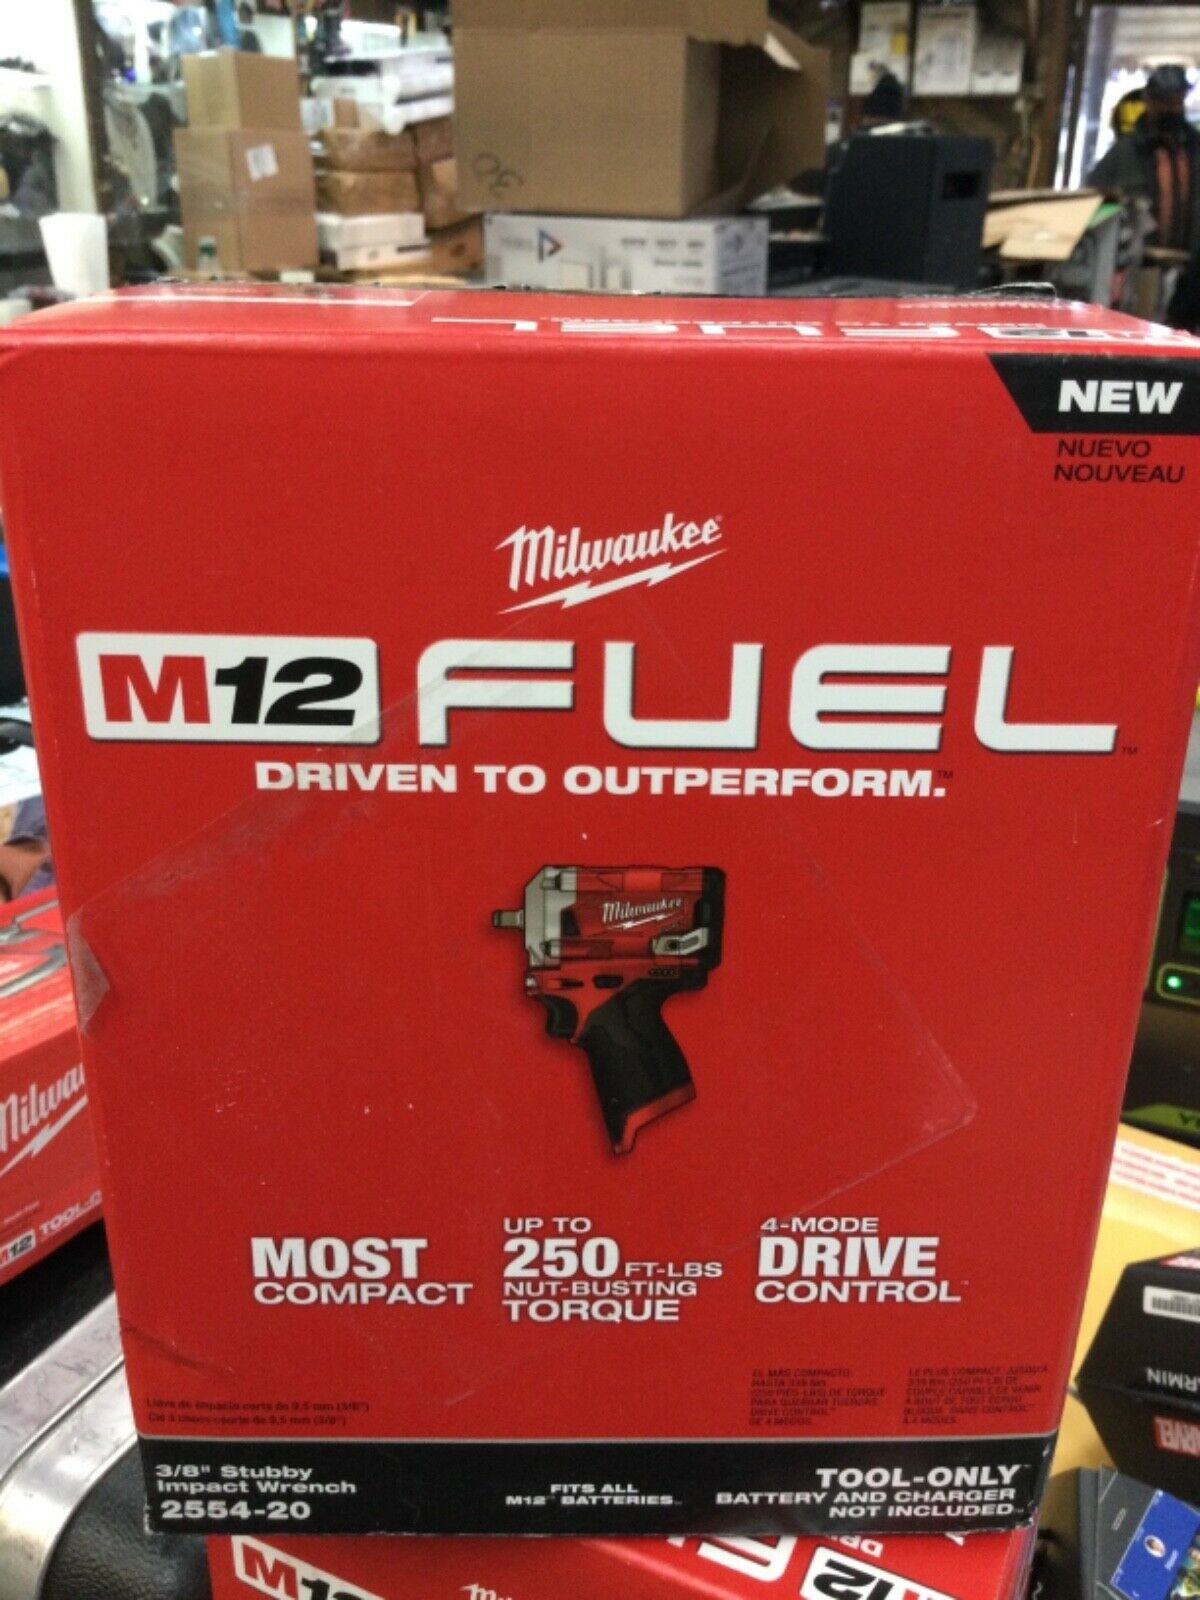 """Milwaukee 2554-20 M12 Fuel 3//8"""" Stubby Impact Wrench Tool-Only NEW!"""